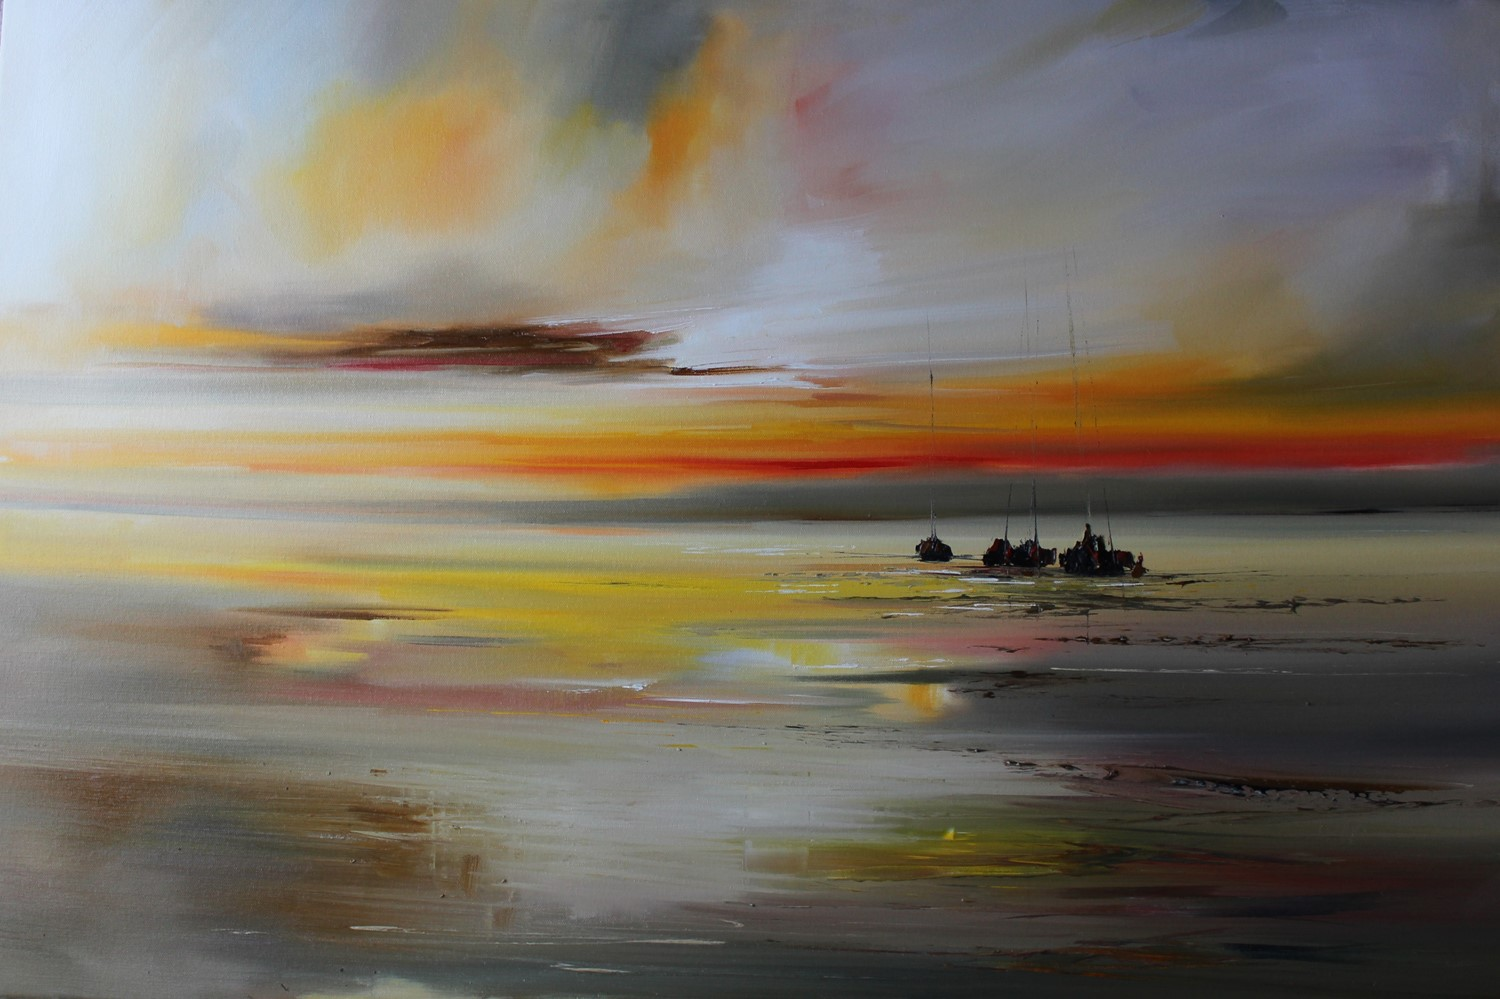 'Yachts at Dusk' by artist Rosanne Barr